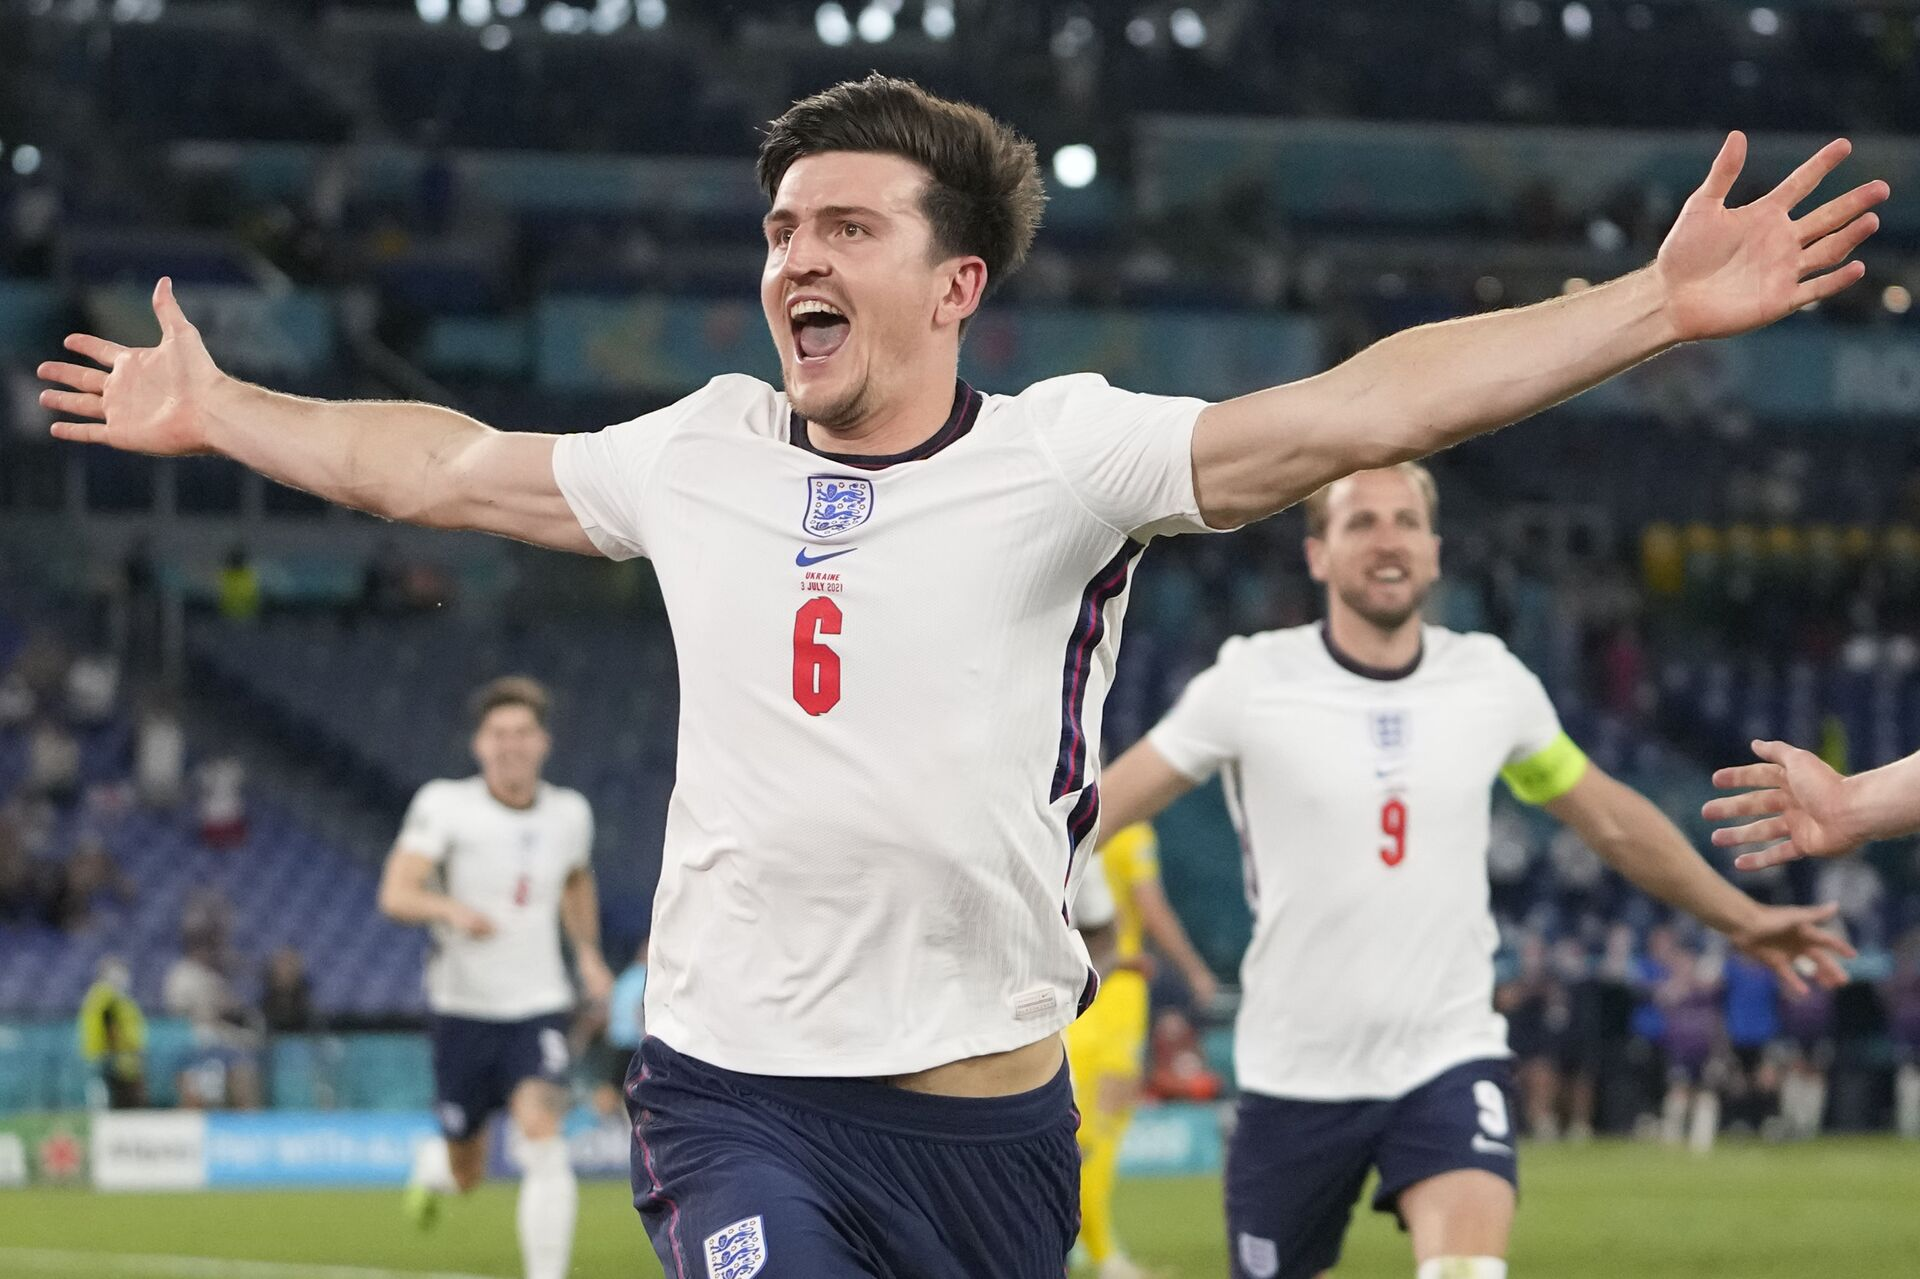 England's Harry Maguire celebrates after scoring his side's second goal during the Euro 2020 soccer championship quarterfinal match between Ukraine and England at the Olympic stadium in Rome at the Olympic stadium in Rome, Italy, Saturday, July 3, 2021 - Sputnik International, 1920, 07.09.2021